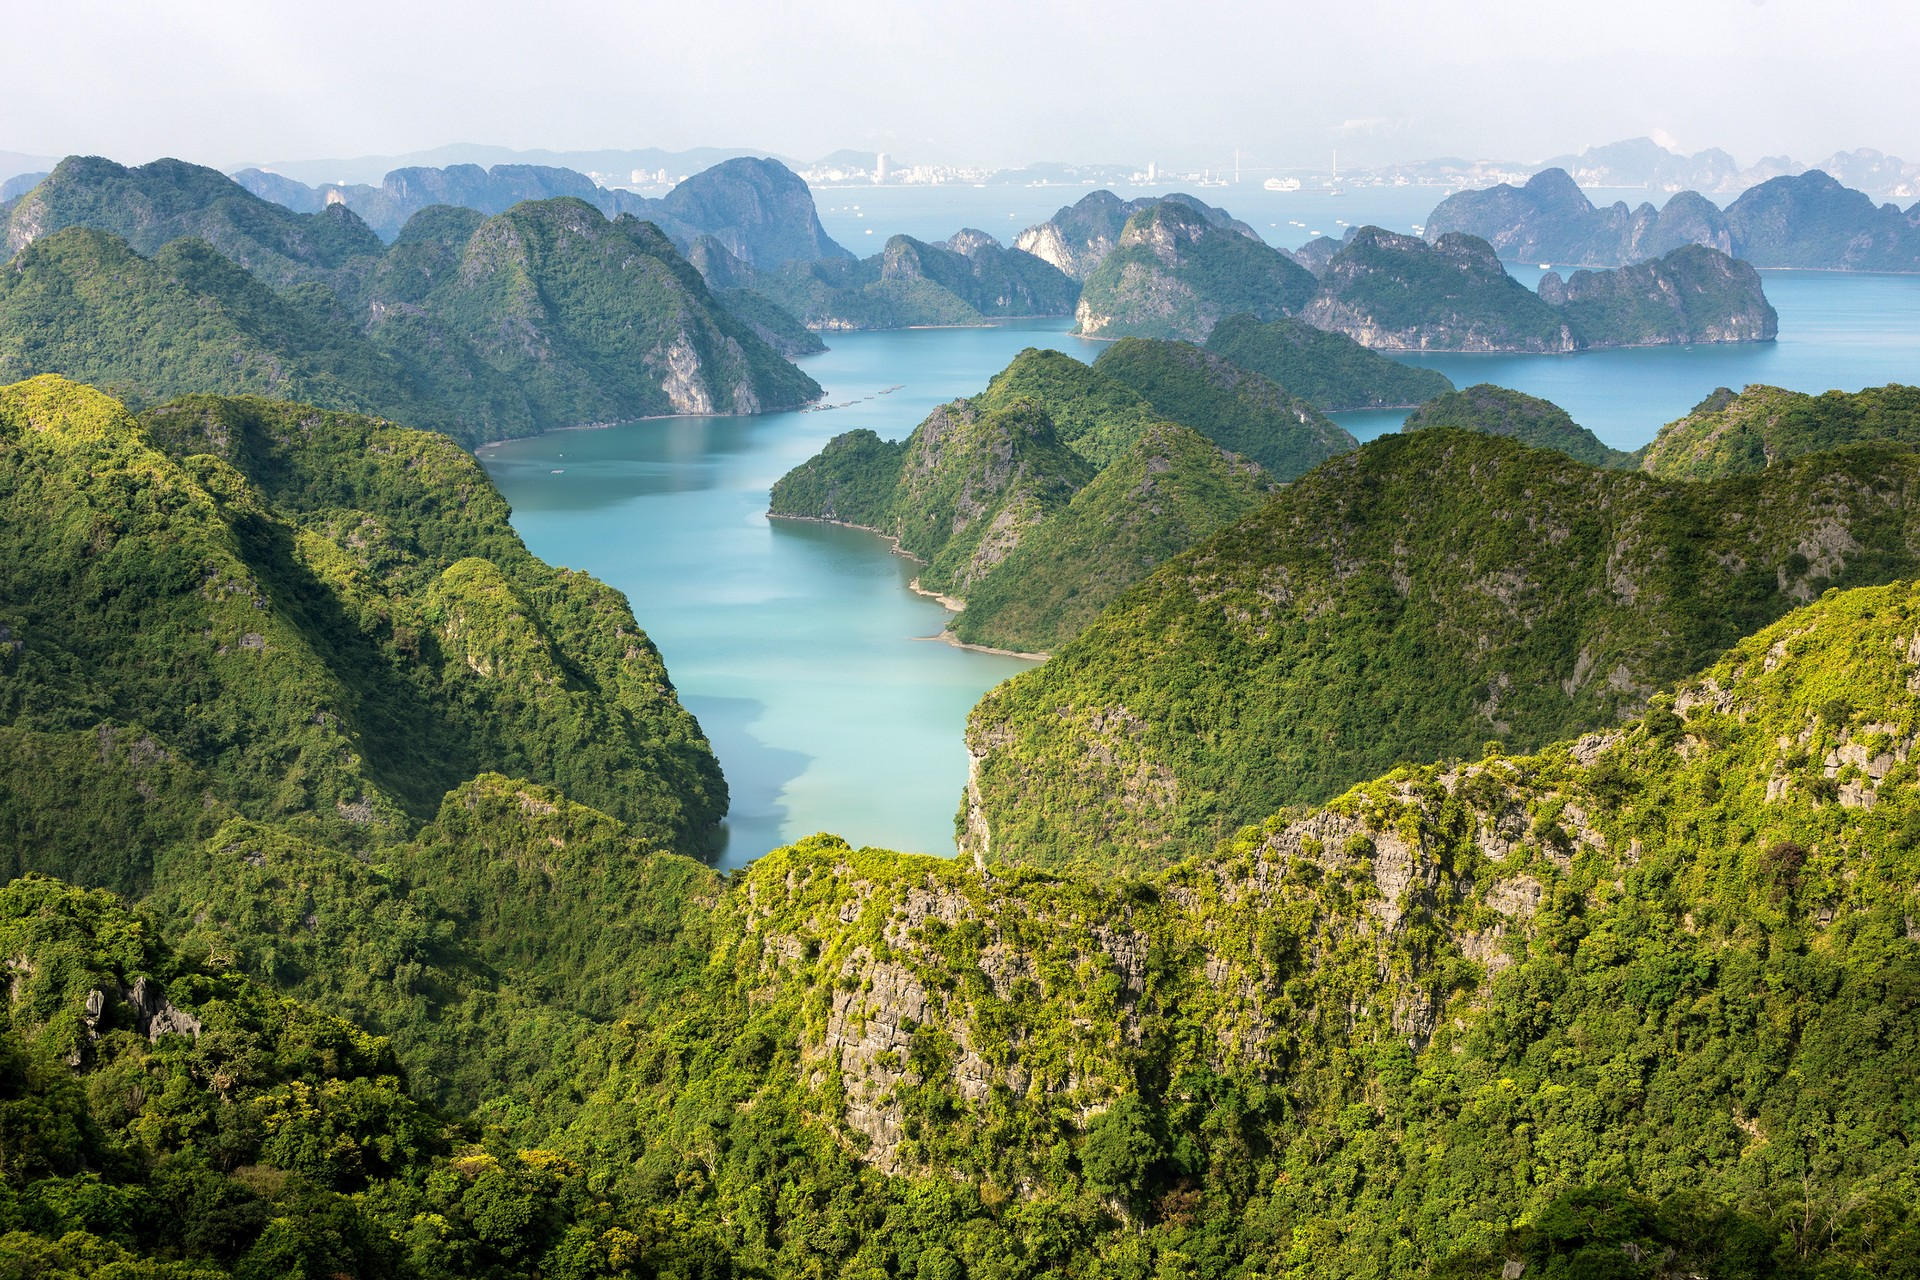 Lan Ha Bay in Vietnam